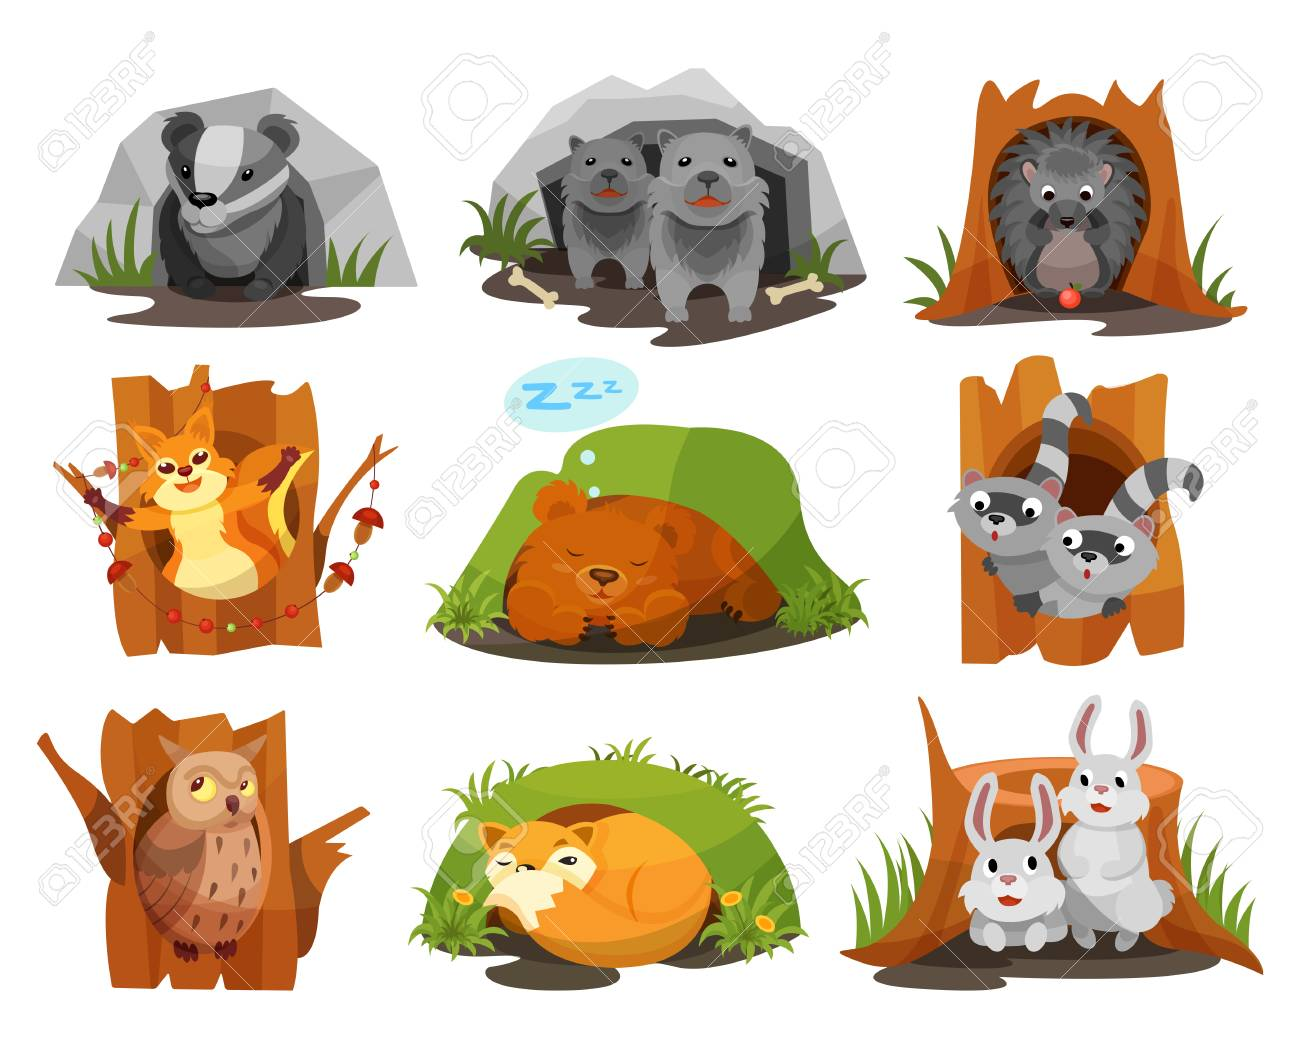 Cute animals sitting in burrows and hollows set, badger, wolves cubs, hedgehog, squirrel, bear cub, raccoon, owlet, fox, hares inside their homes vector Illustration isolated on a white background. - 109774317